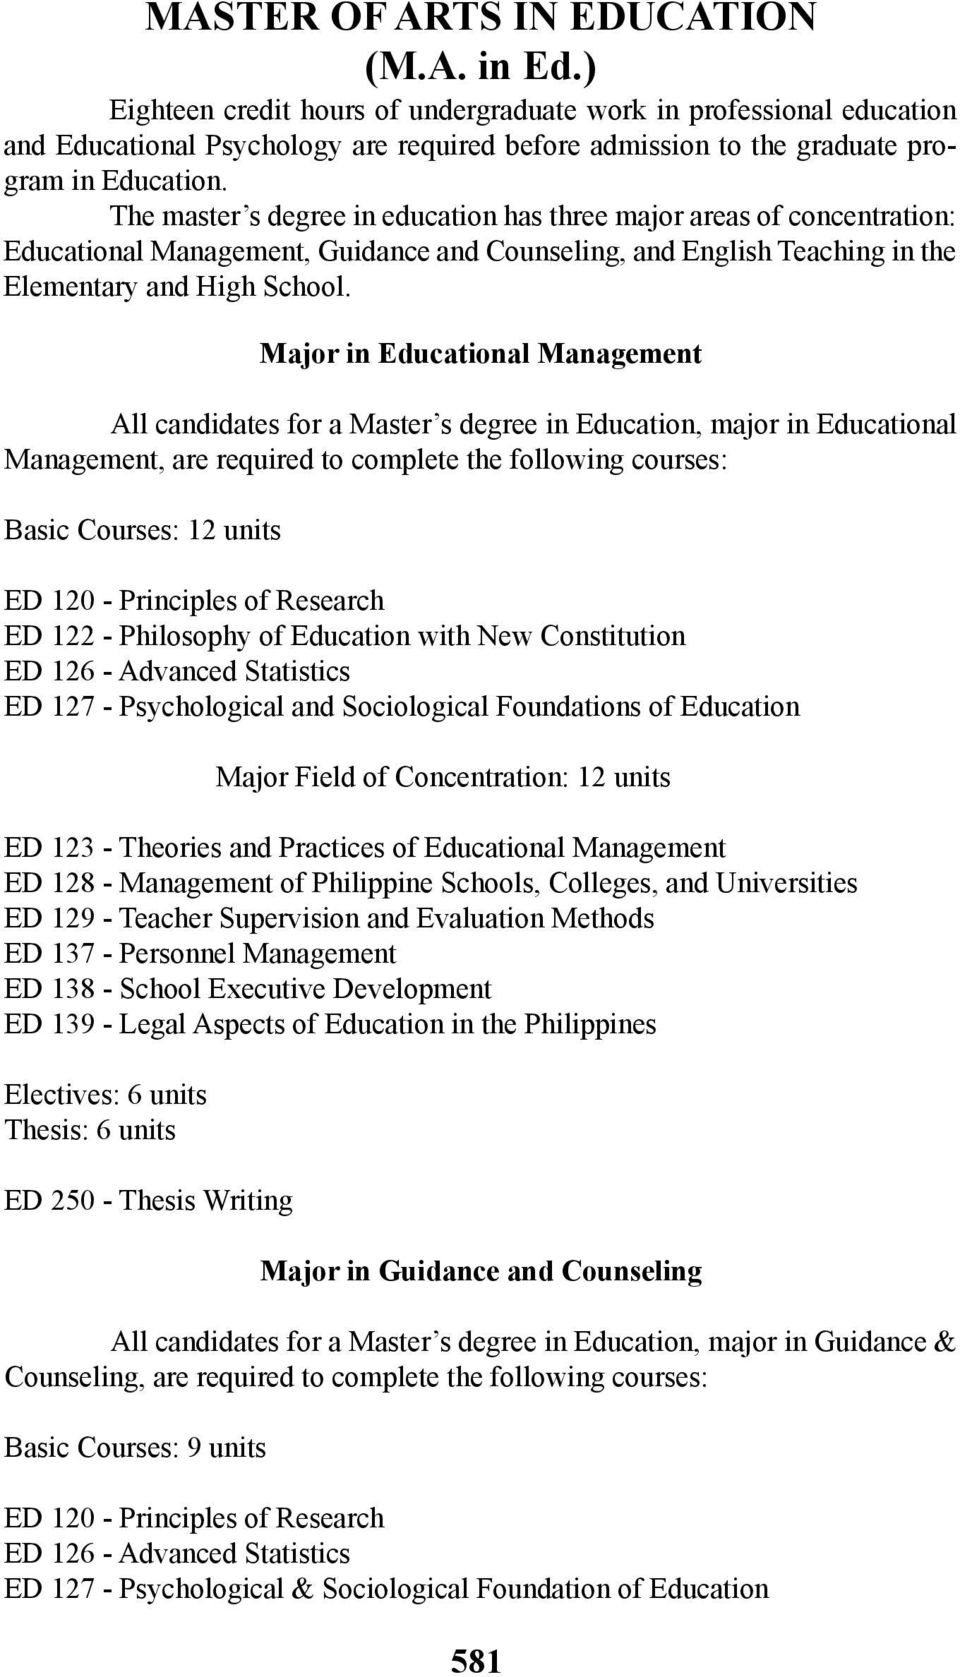 The master s degree in education has three major areas of concentration: Educational Management, Guidance and Counseling, and English Teaching in the Elementary and High School.